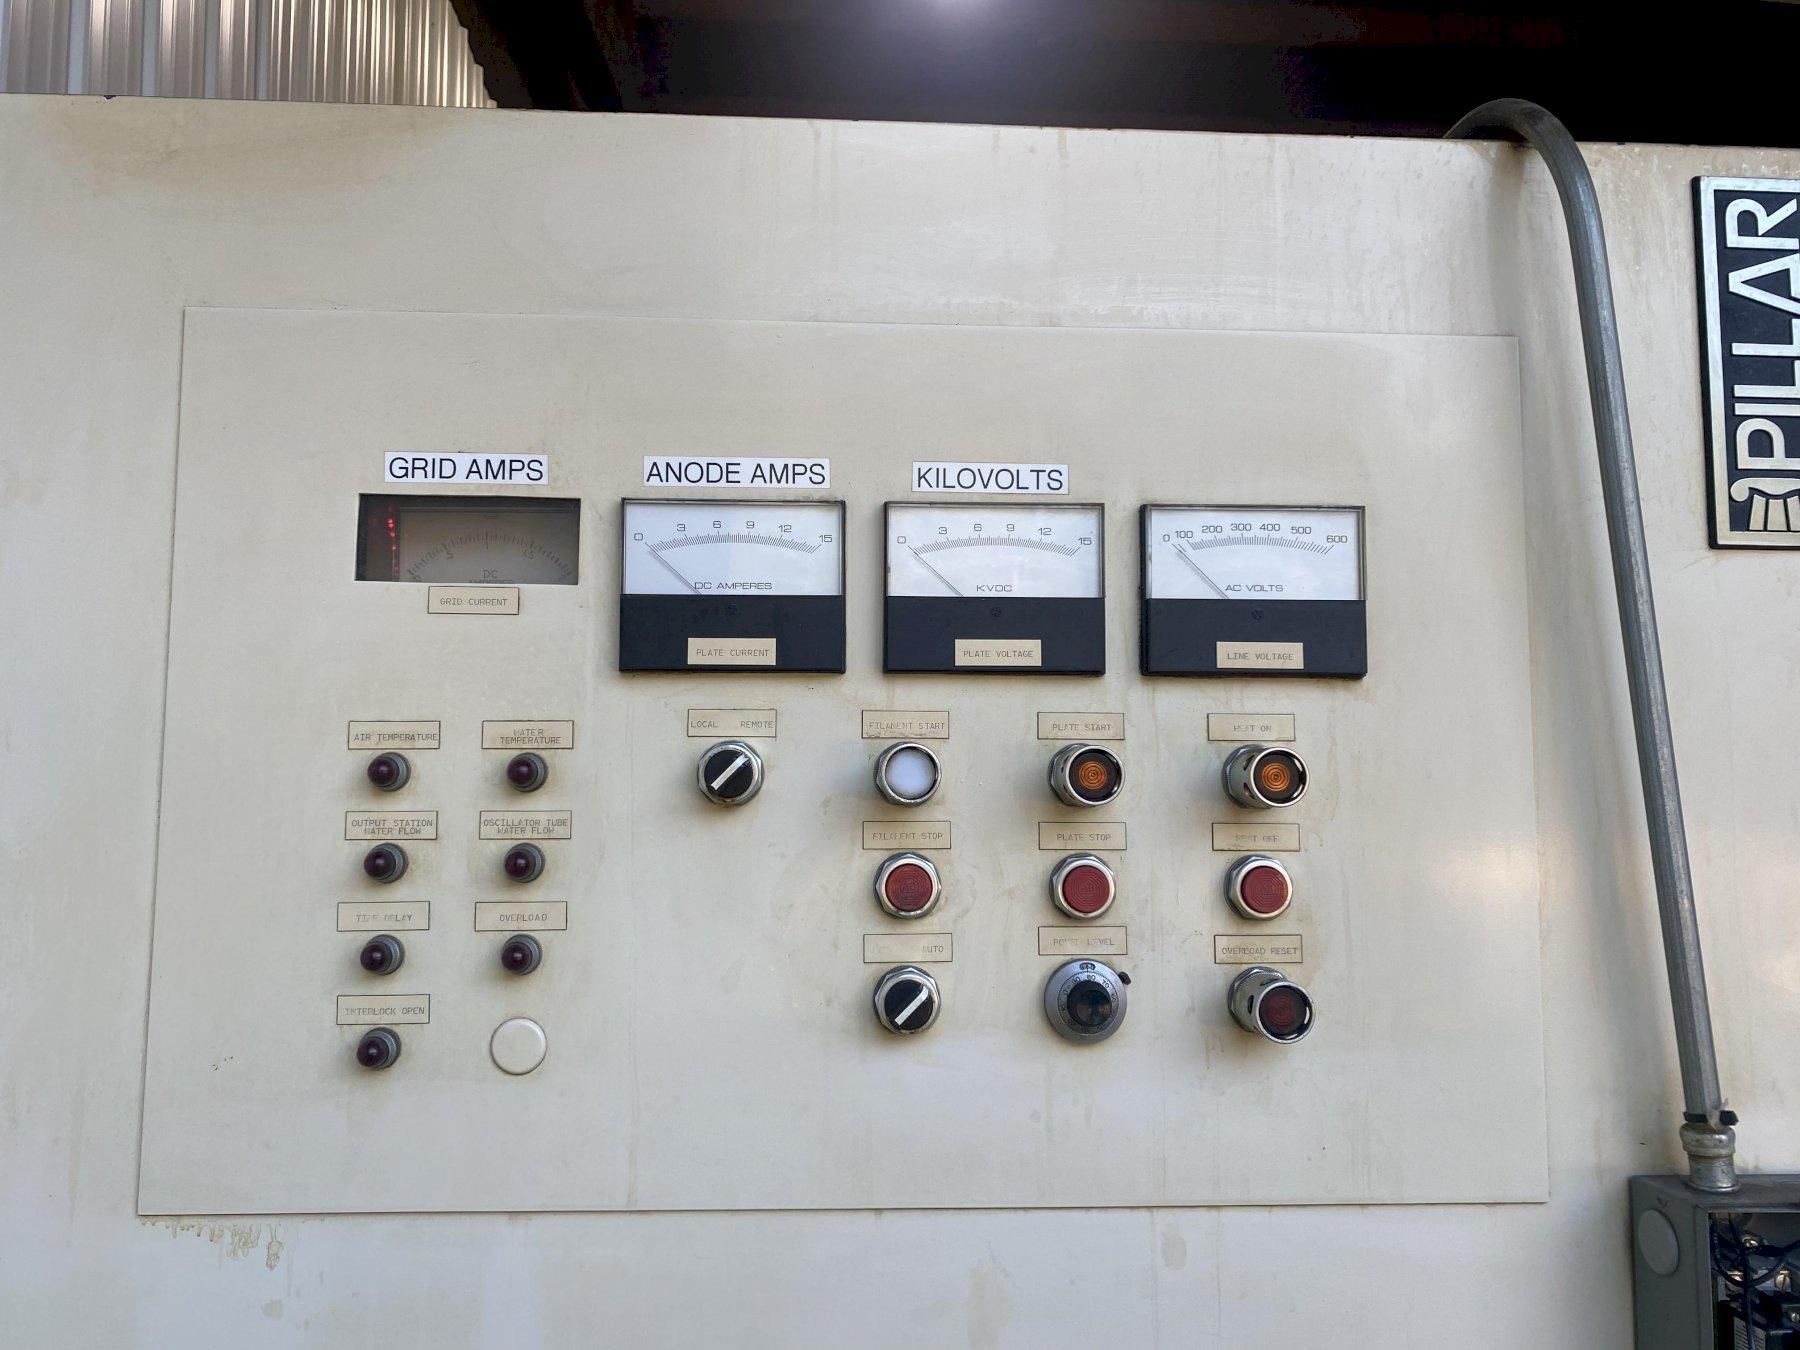 50 kw PILLAR INDUSTRIES MODEL CE-500 INDUCTION FURNACE & POWER SUPPLY: STOCK #15400